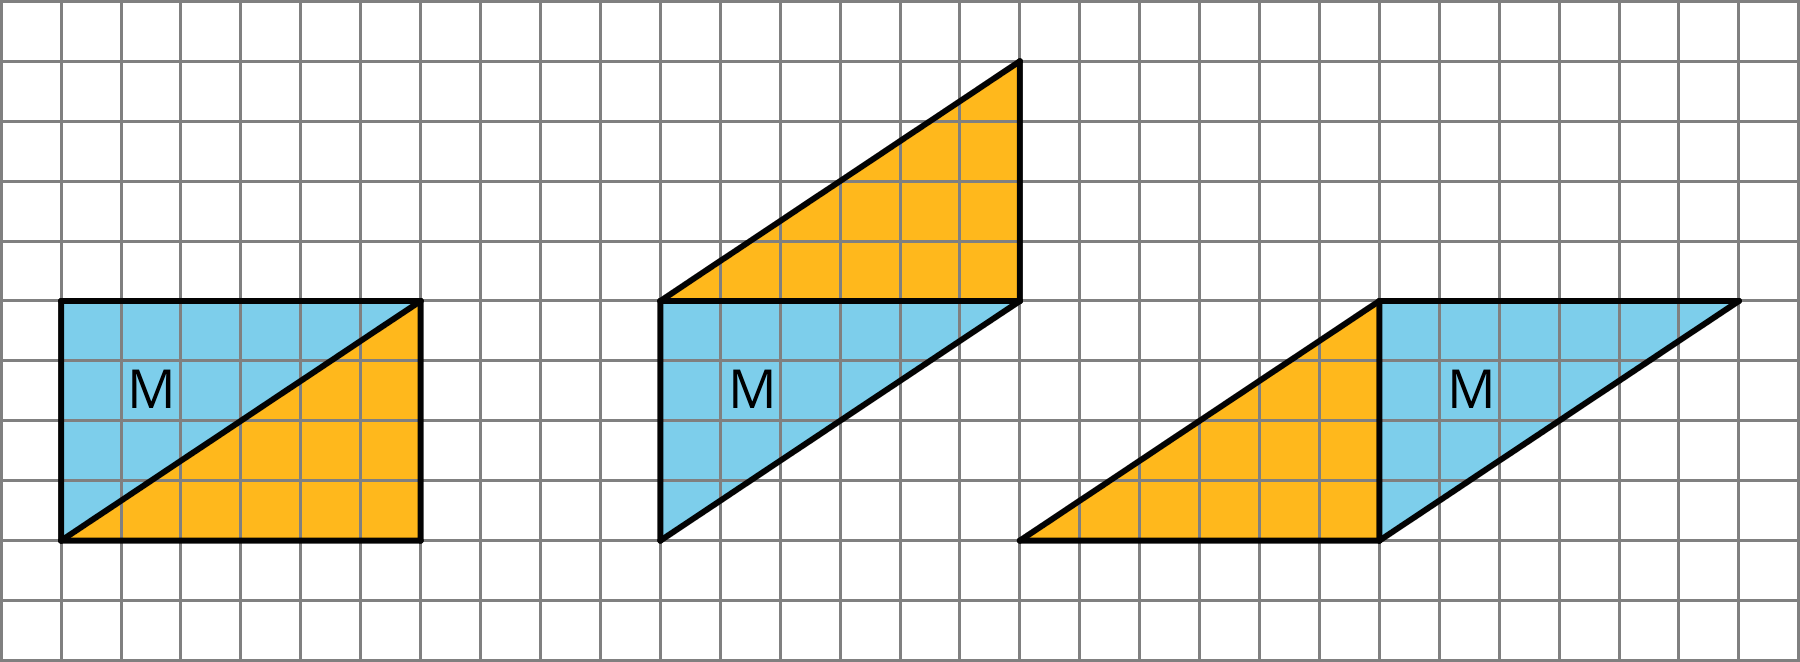 Three images of triangle M. The first image has a copy composed along the angled side of the triangle to compose a rectangle, the second has a copy along the top side of the triangle to compose a parallelogram, and the third has a copy along the left side of the triangle to compose a parallelogram.